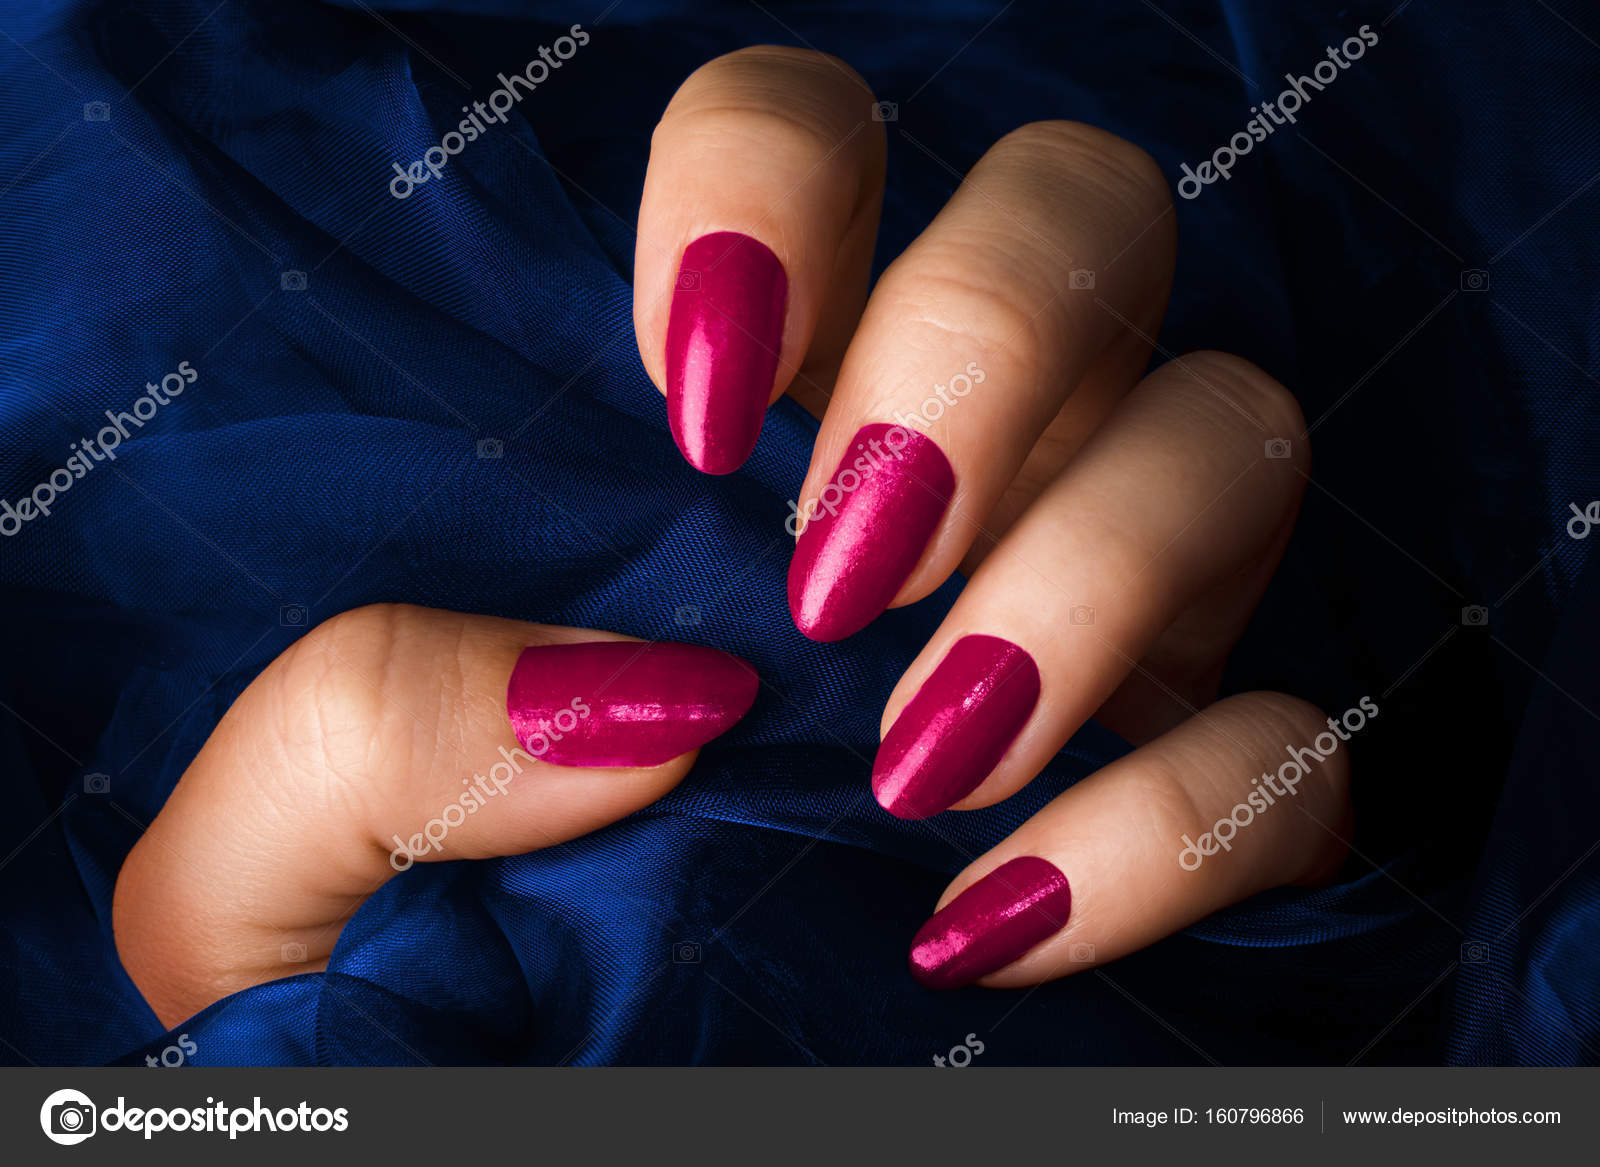 pink nails on dark blue background — Stock Photo © gyurma #160796866